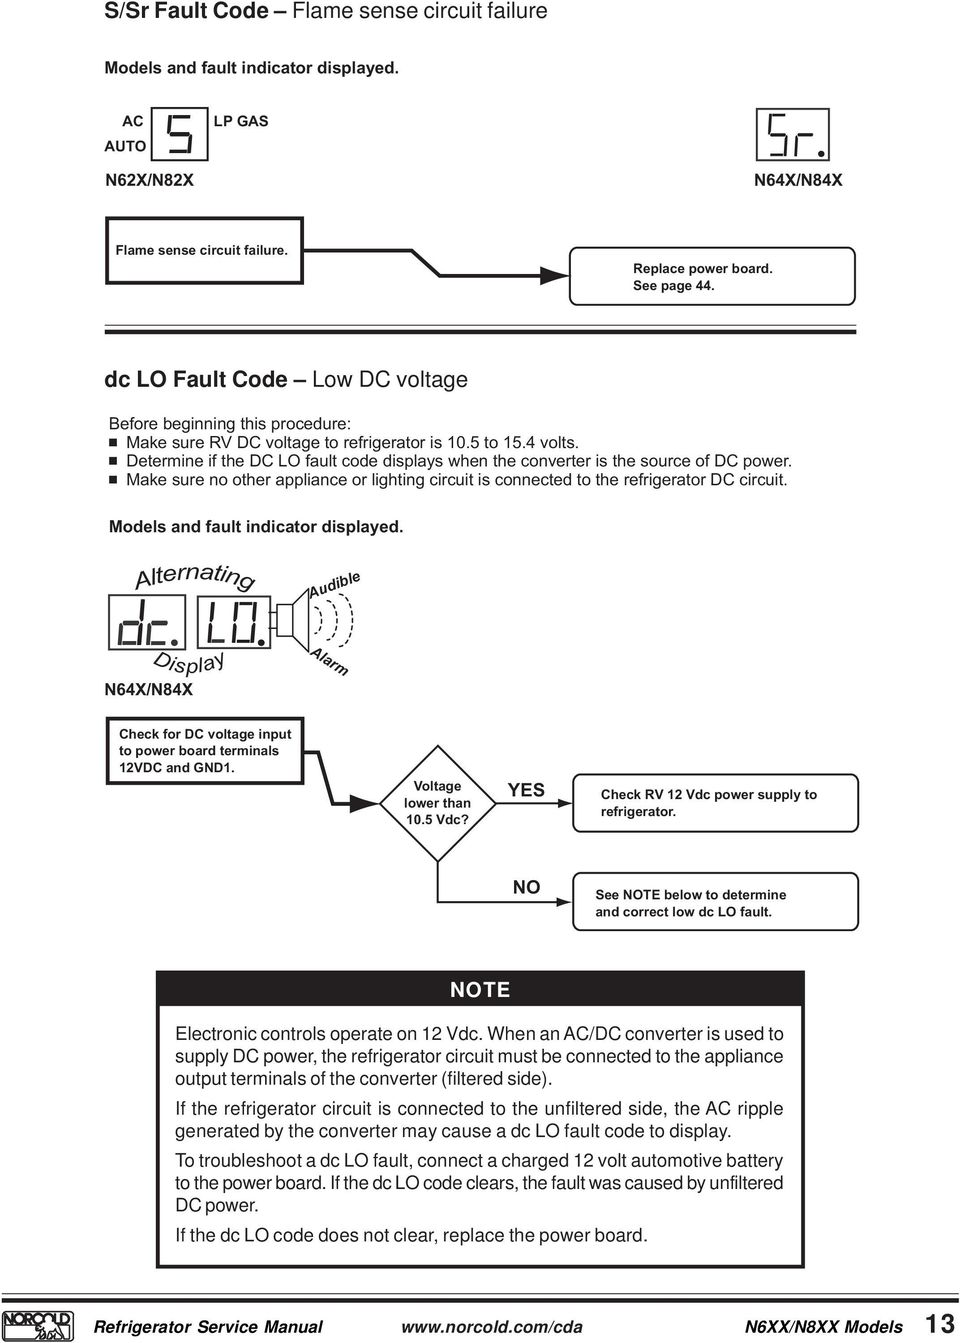 Service Manual Gas Electric Refrigerators Warning Models N61x Refrigerator Potential Relay Troubleshooting Diagram Determine If The Dc Lo Fault Code Displays When Converter Is Source Of